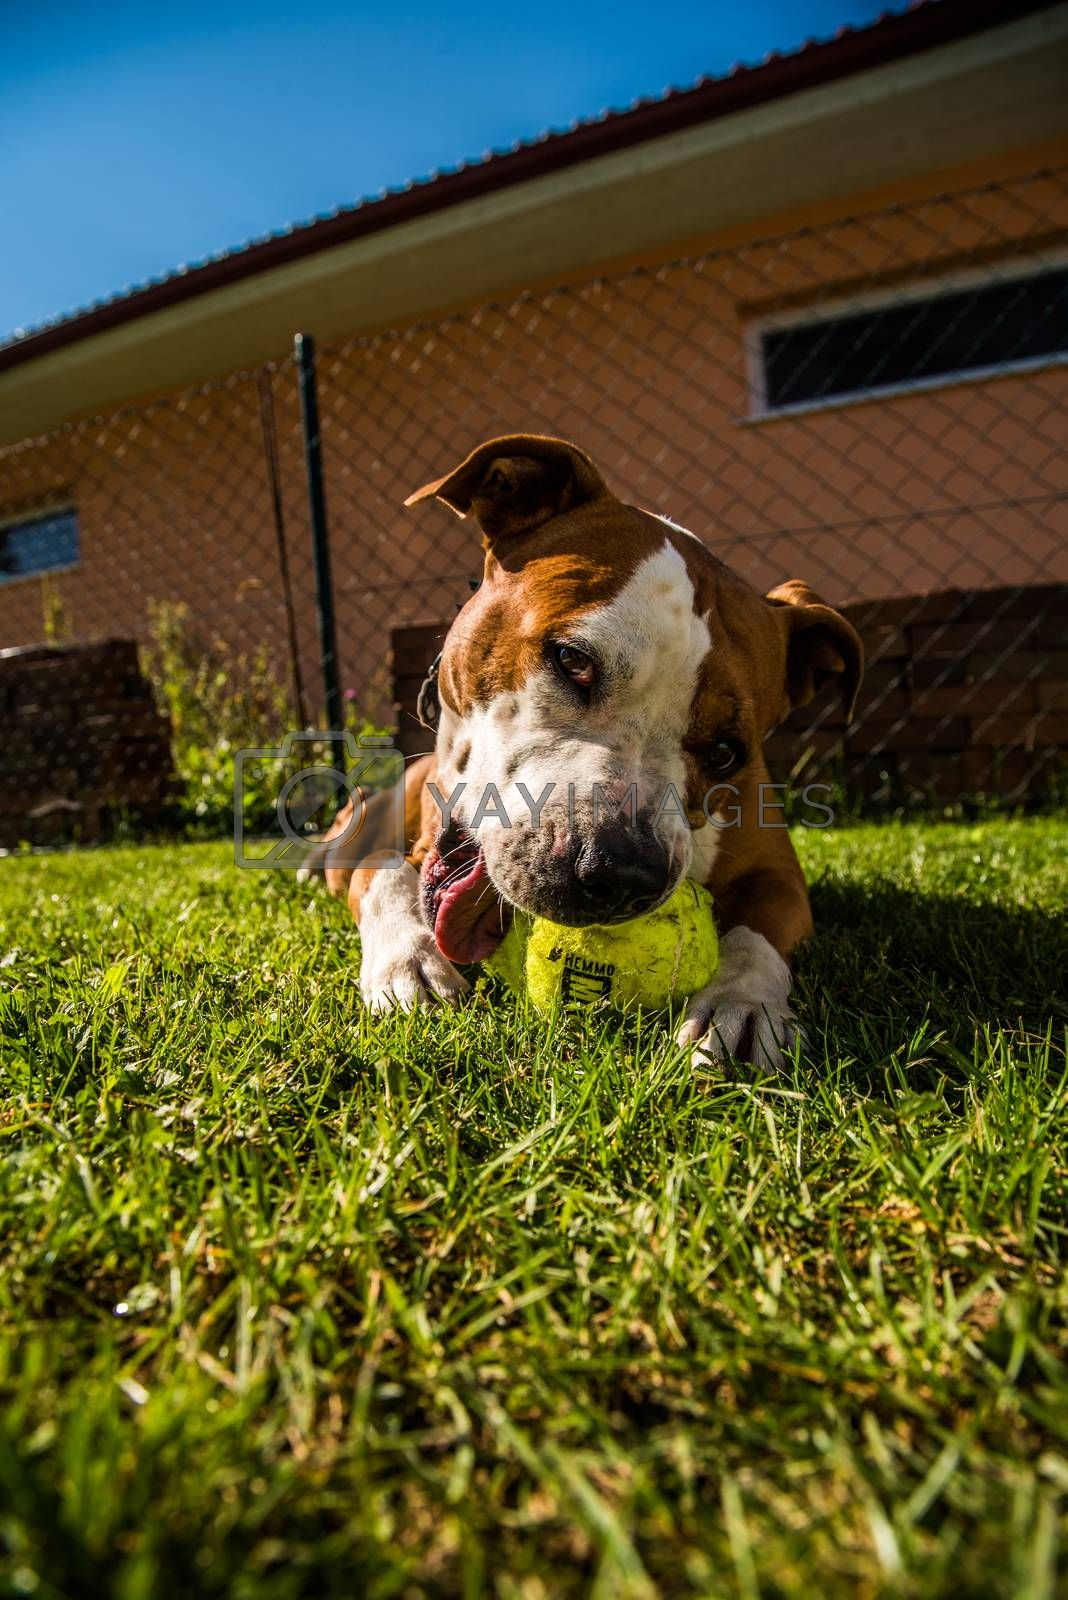 Staffordshire Amstaff dog playing in a garden with a ball